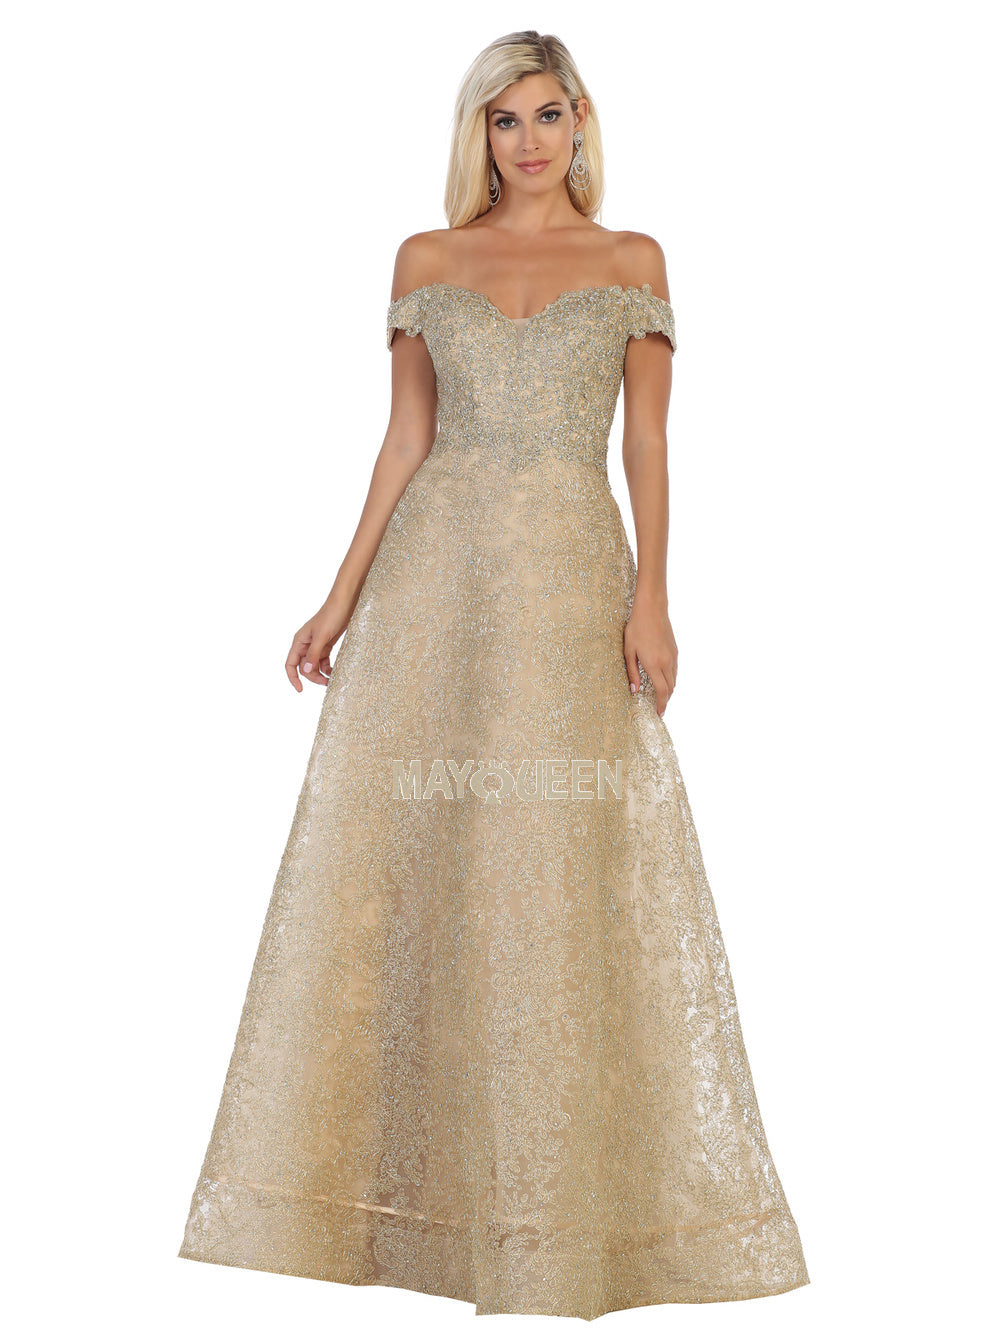 Mayqueen Size Chart E MQ 7722 - Glitter Lace Tulle A-Line with Off-Shoulder Sleeves - Diggz Prom